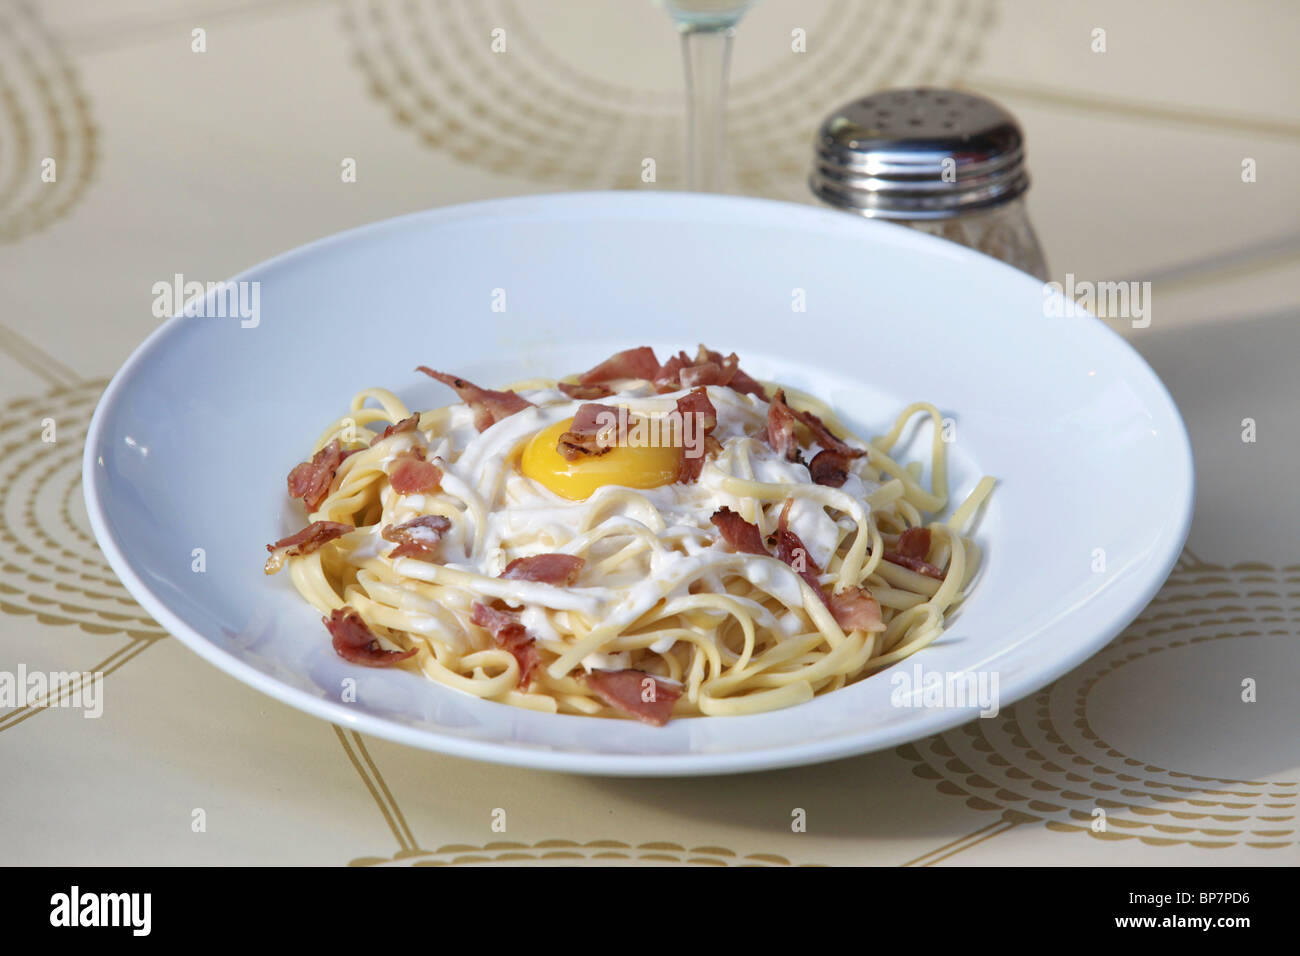 plate of linguine with bacon and fried egg - Stock Image